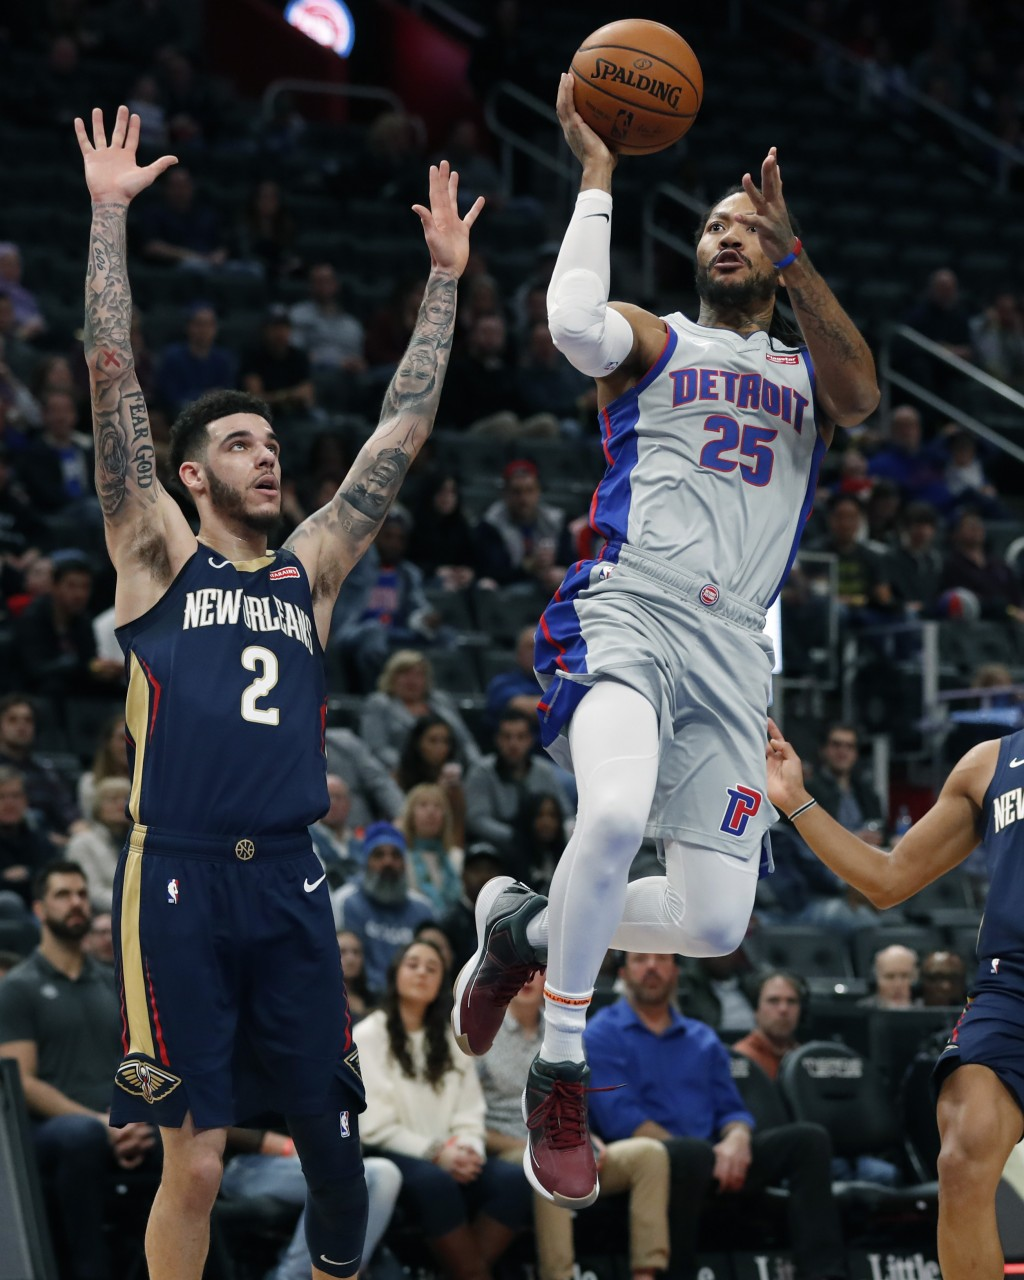 Detroit Pistons guard Derrick Rose (25) attempts a layup as New Orleans Pelicans guard Lonzo Ball (2) defends during the first half of an NBA basketba...